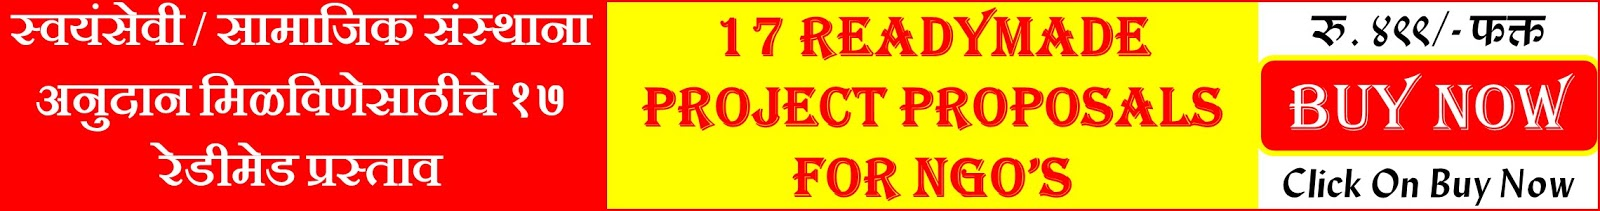 17 Ready made project proposals for ngo